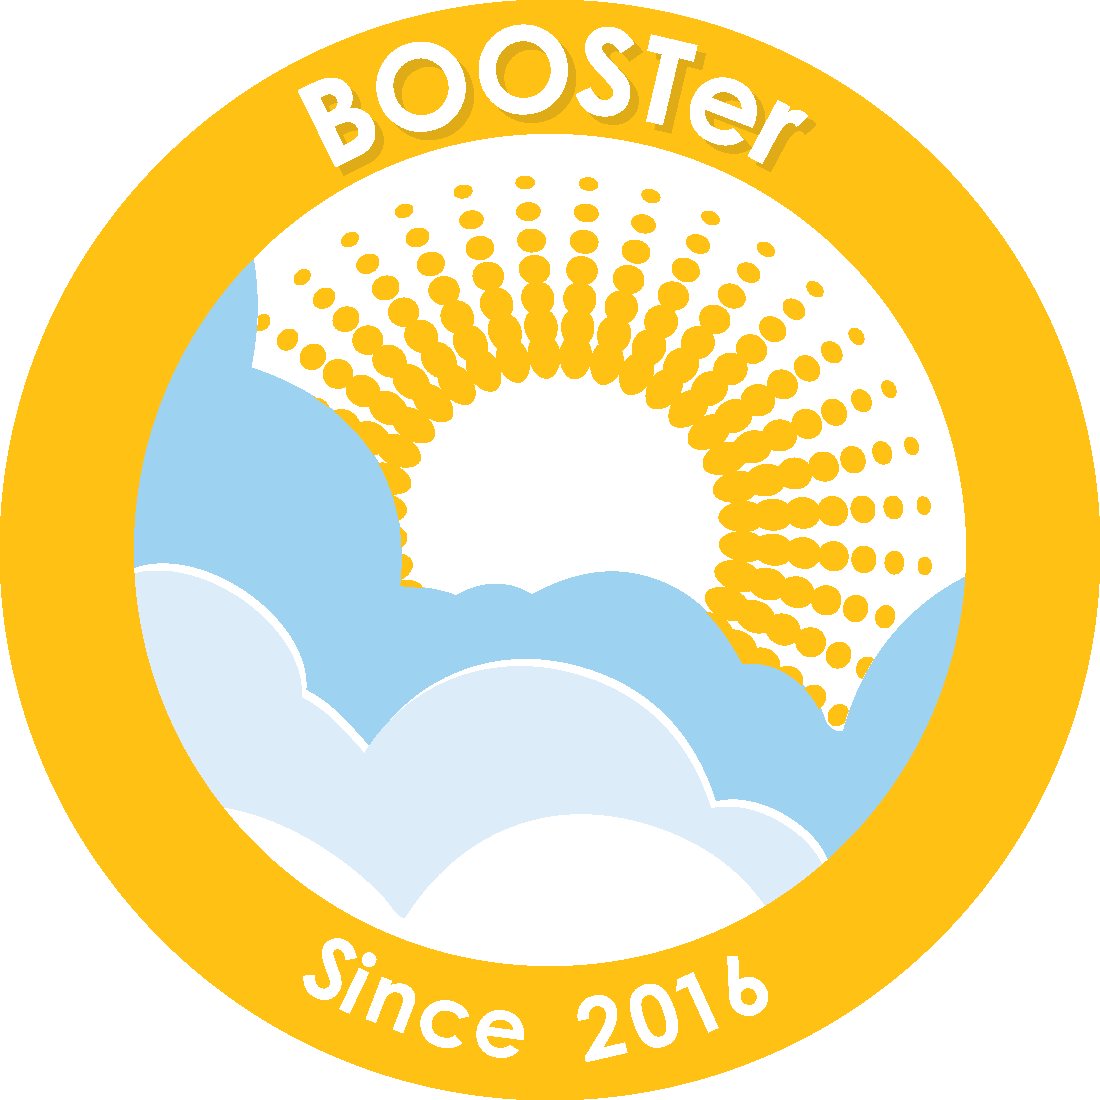 2016 BOOSTer Since badge